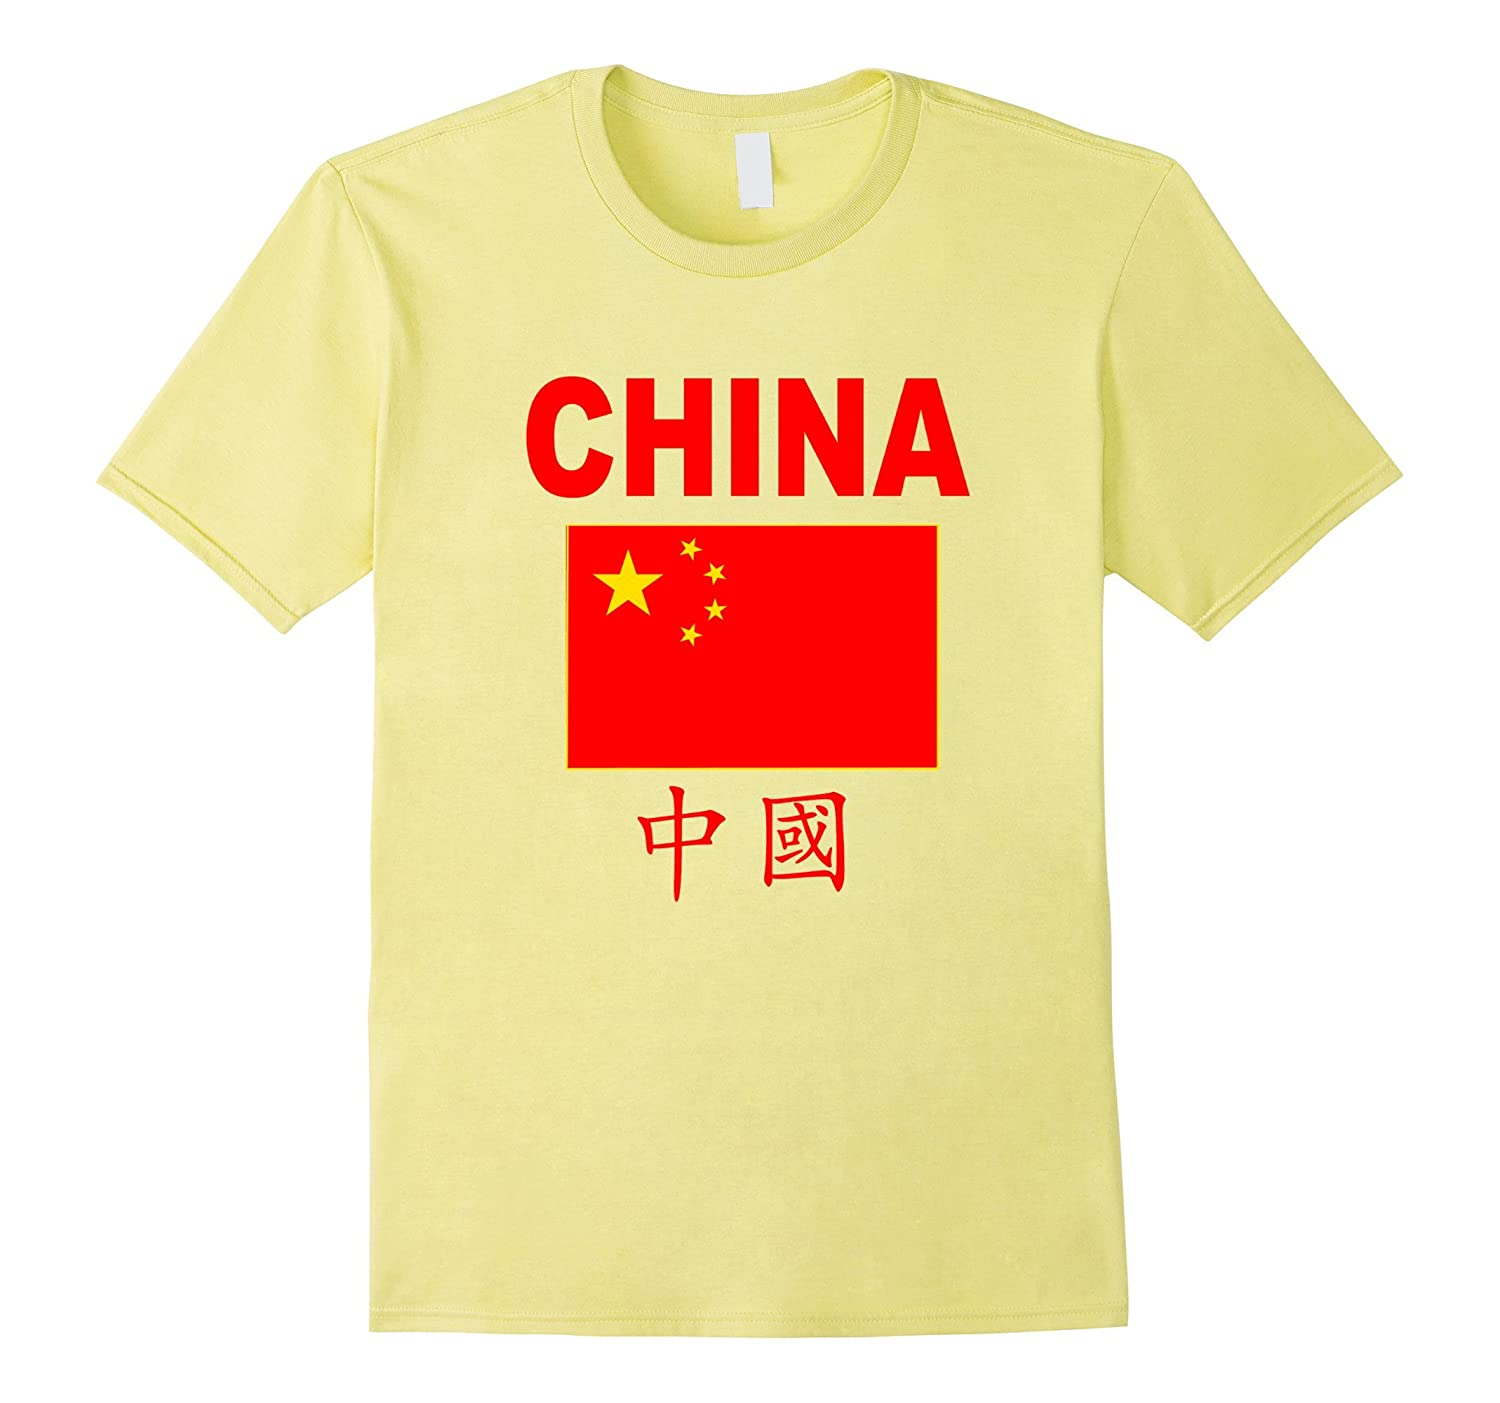 aec1cb875 China T-Shirt Flag Chinese Cool Stars Unisex Top Tee-ANZ ⋆ Anztshirt